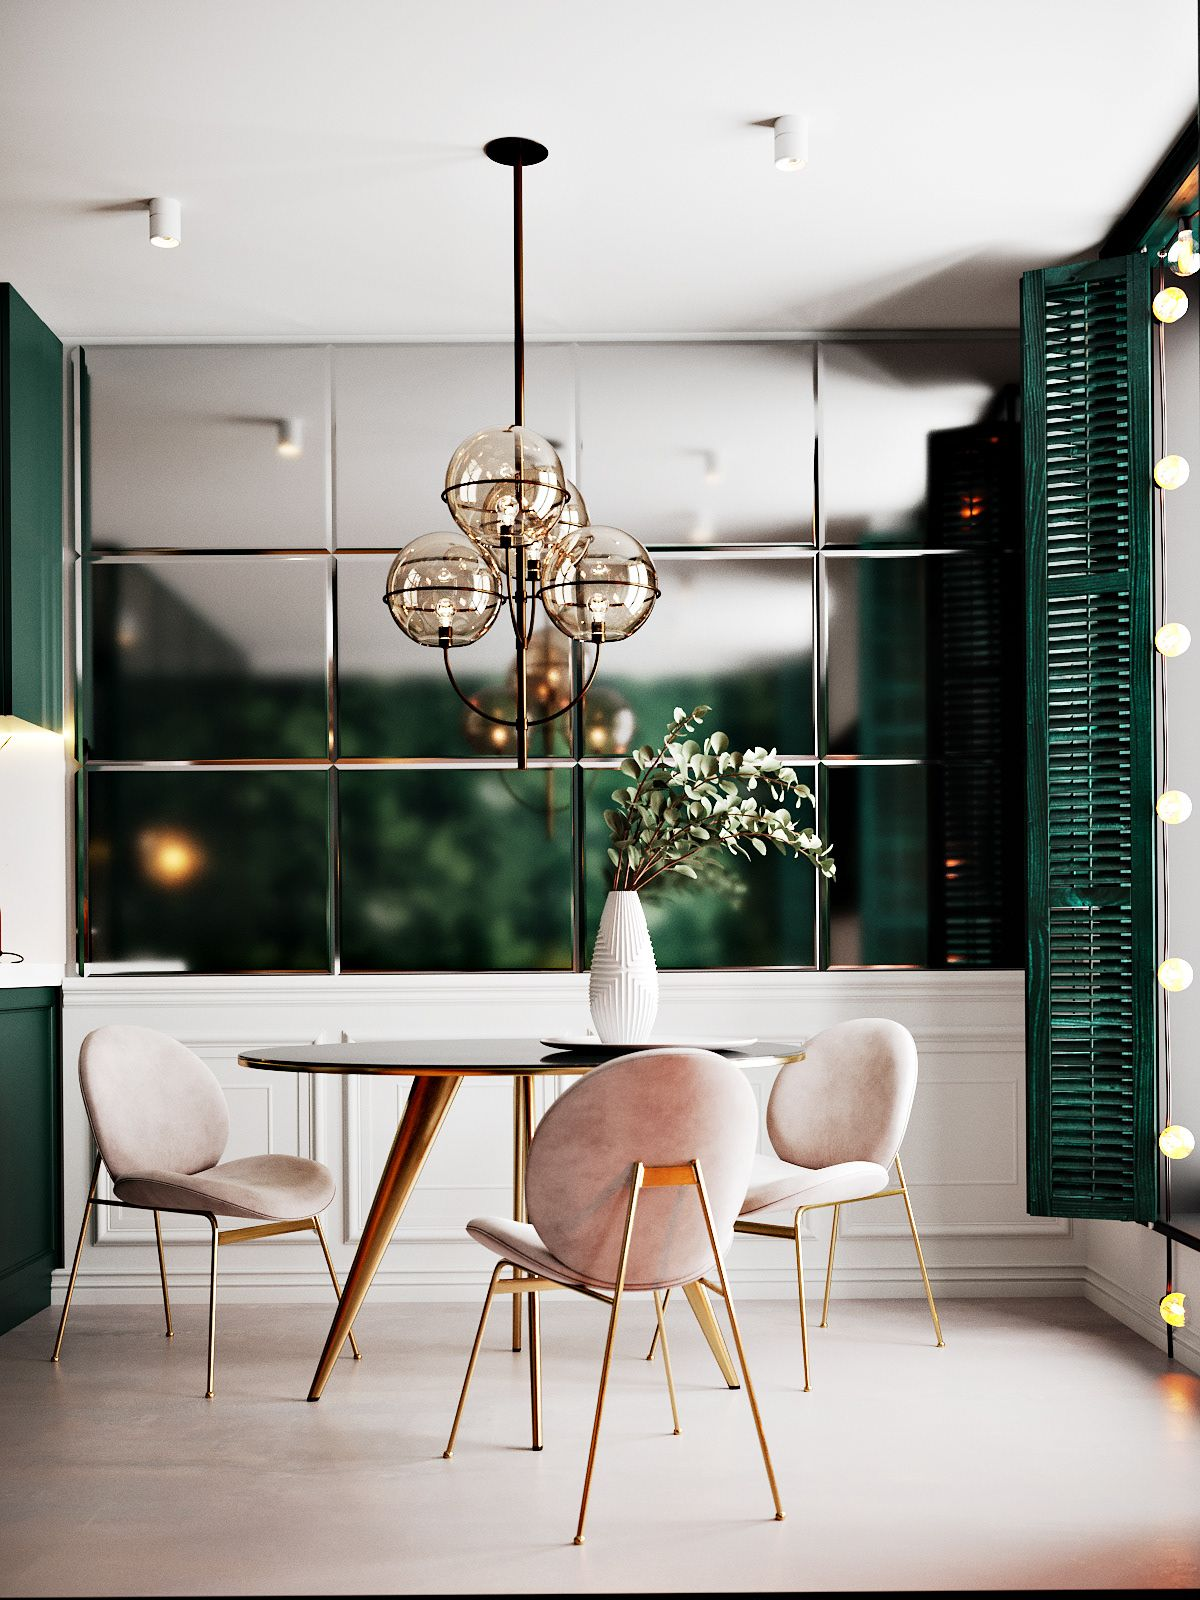 New york concept house on behance also elegant dining room lighting ideas interior design rh pinterest